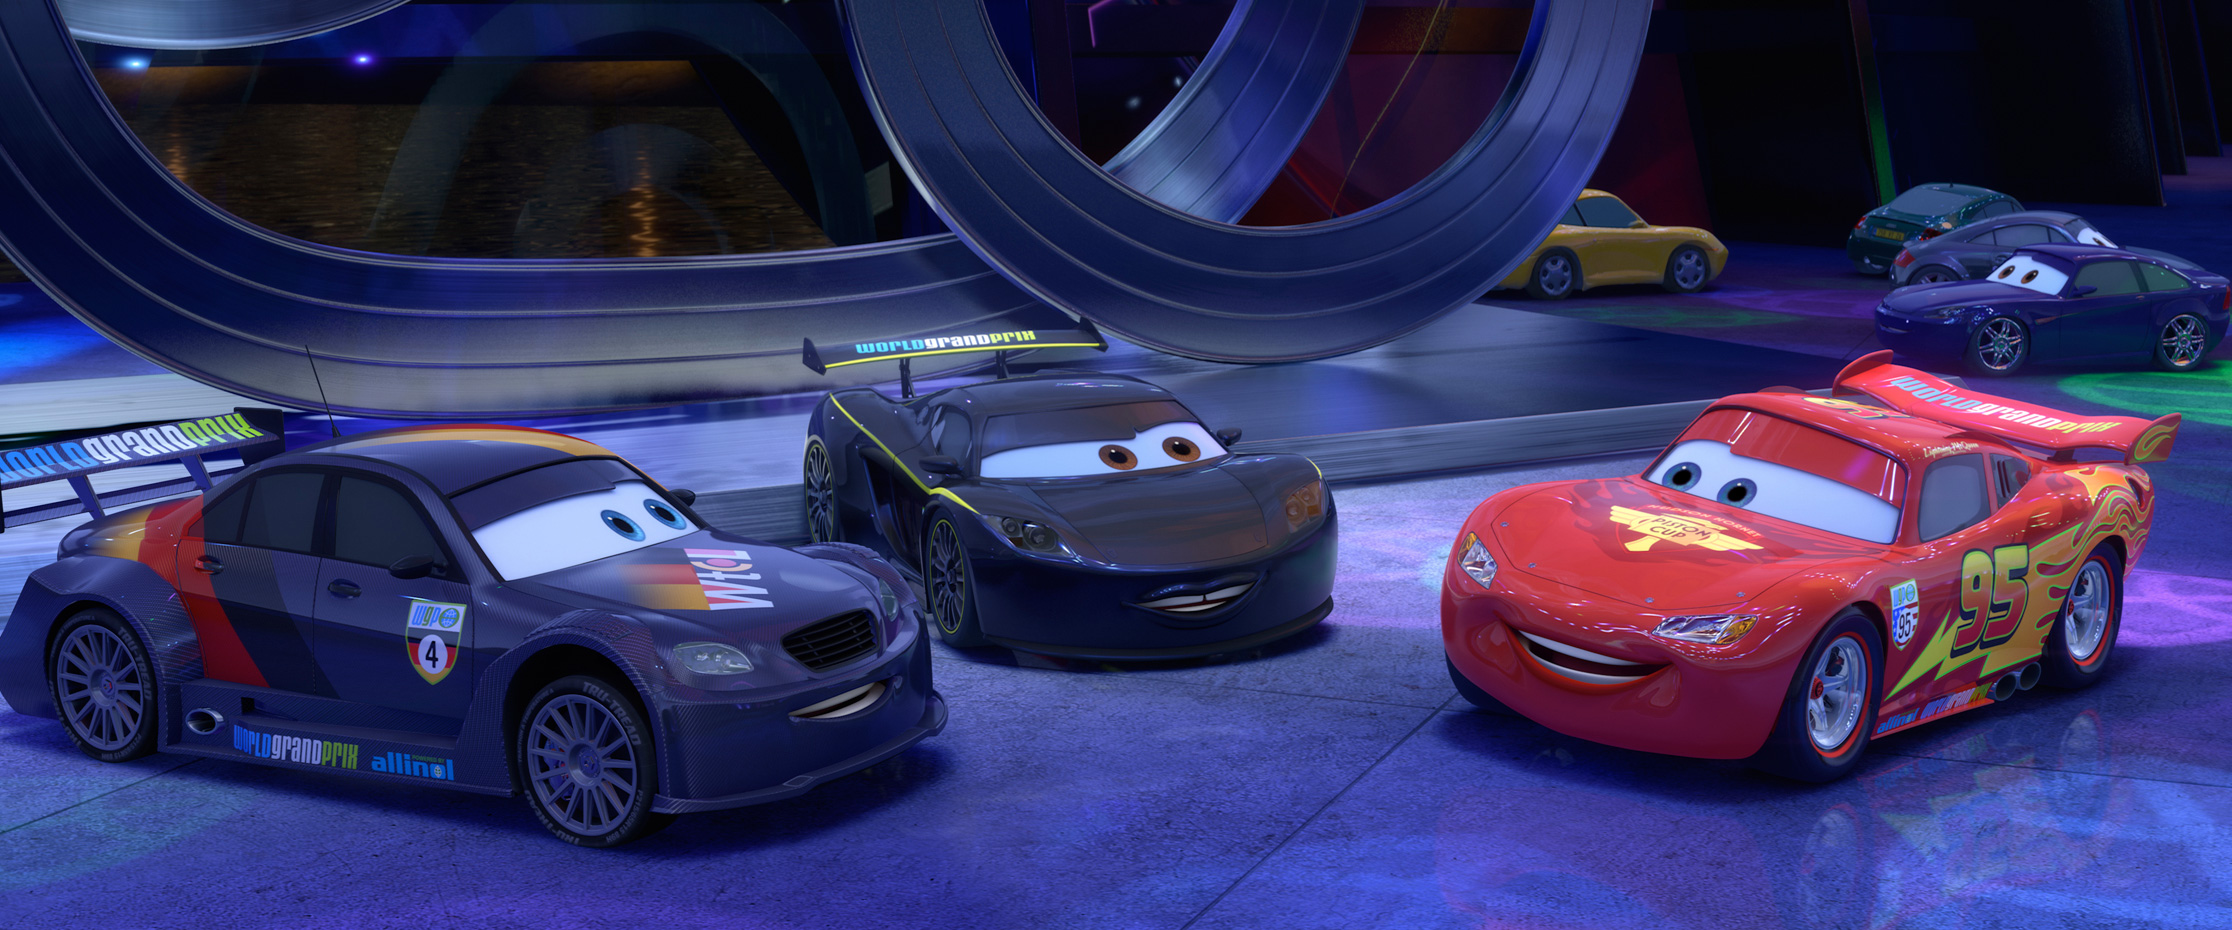 Localization In Cars 2 Pixar Post Forum